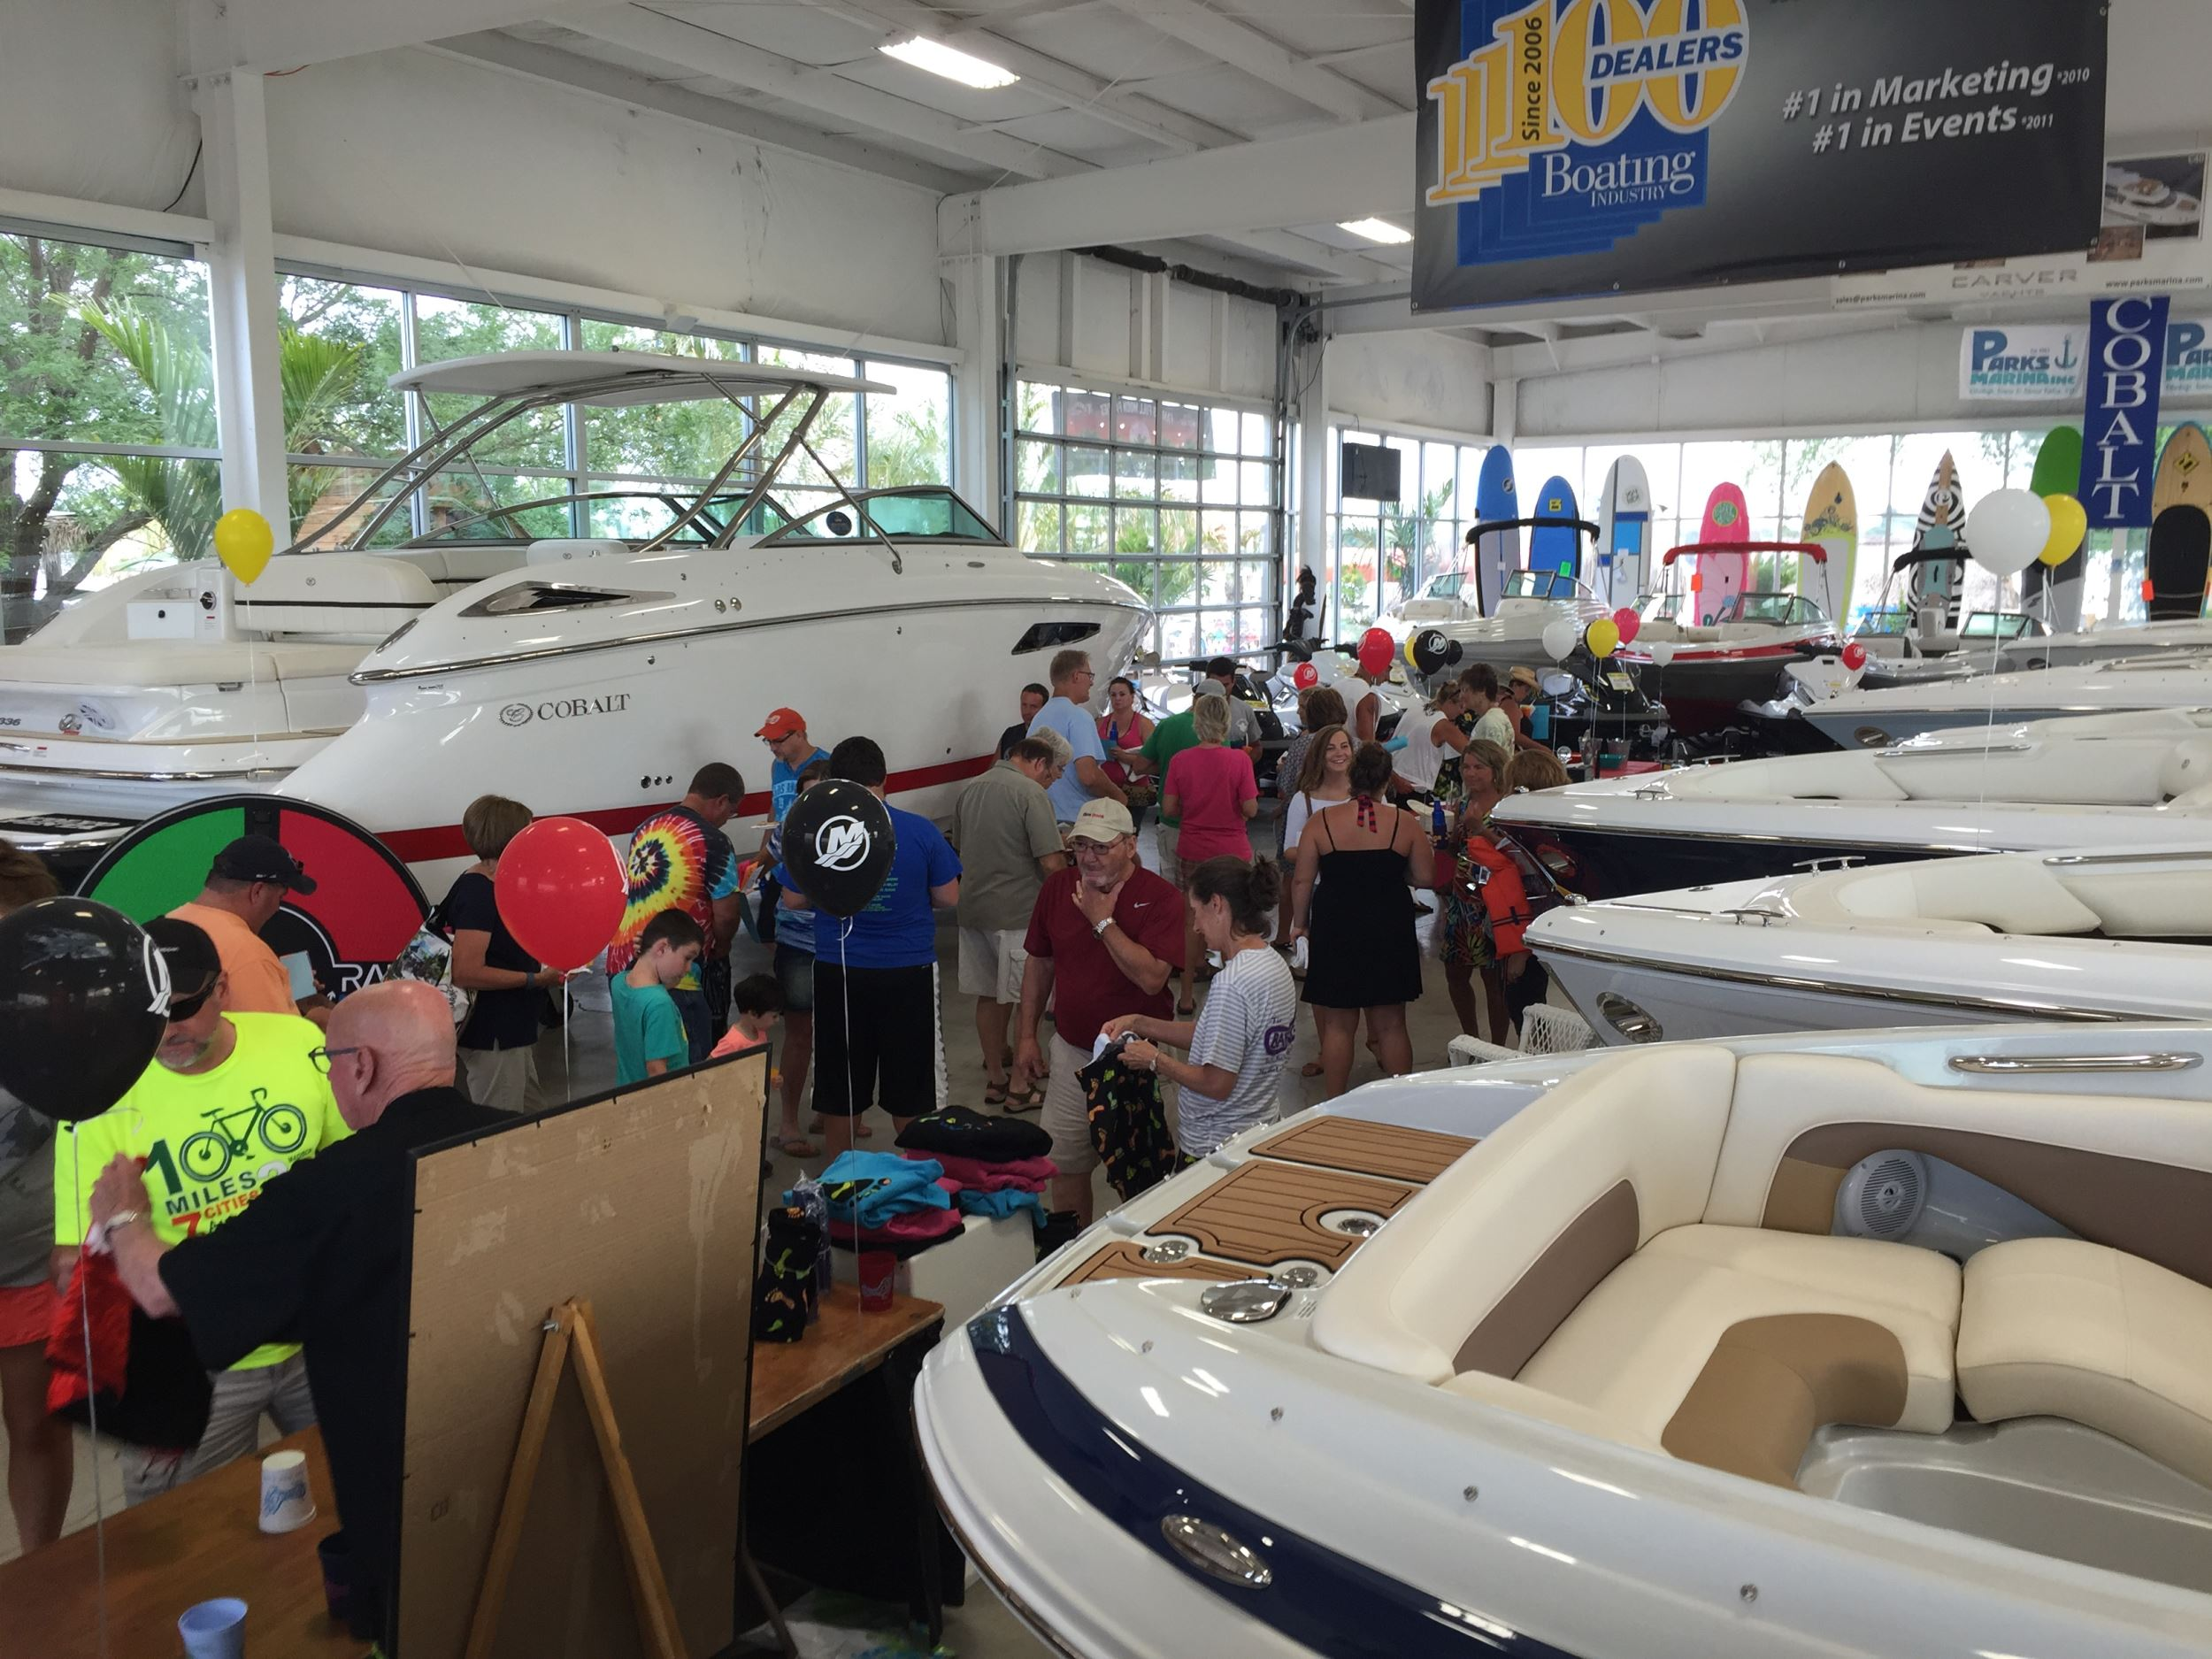 Crownline Rendezvous (Exclusive Event for Parks Marina Crownline Owners)